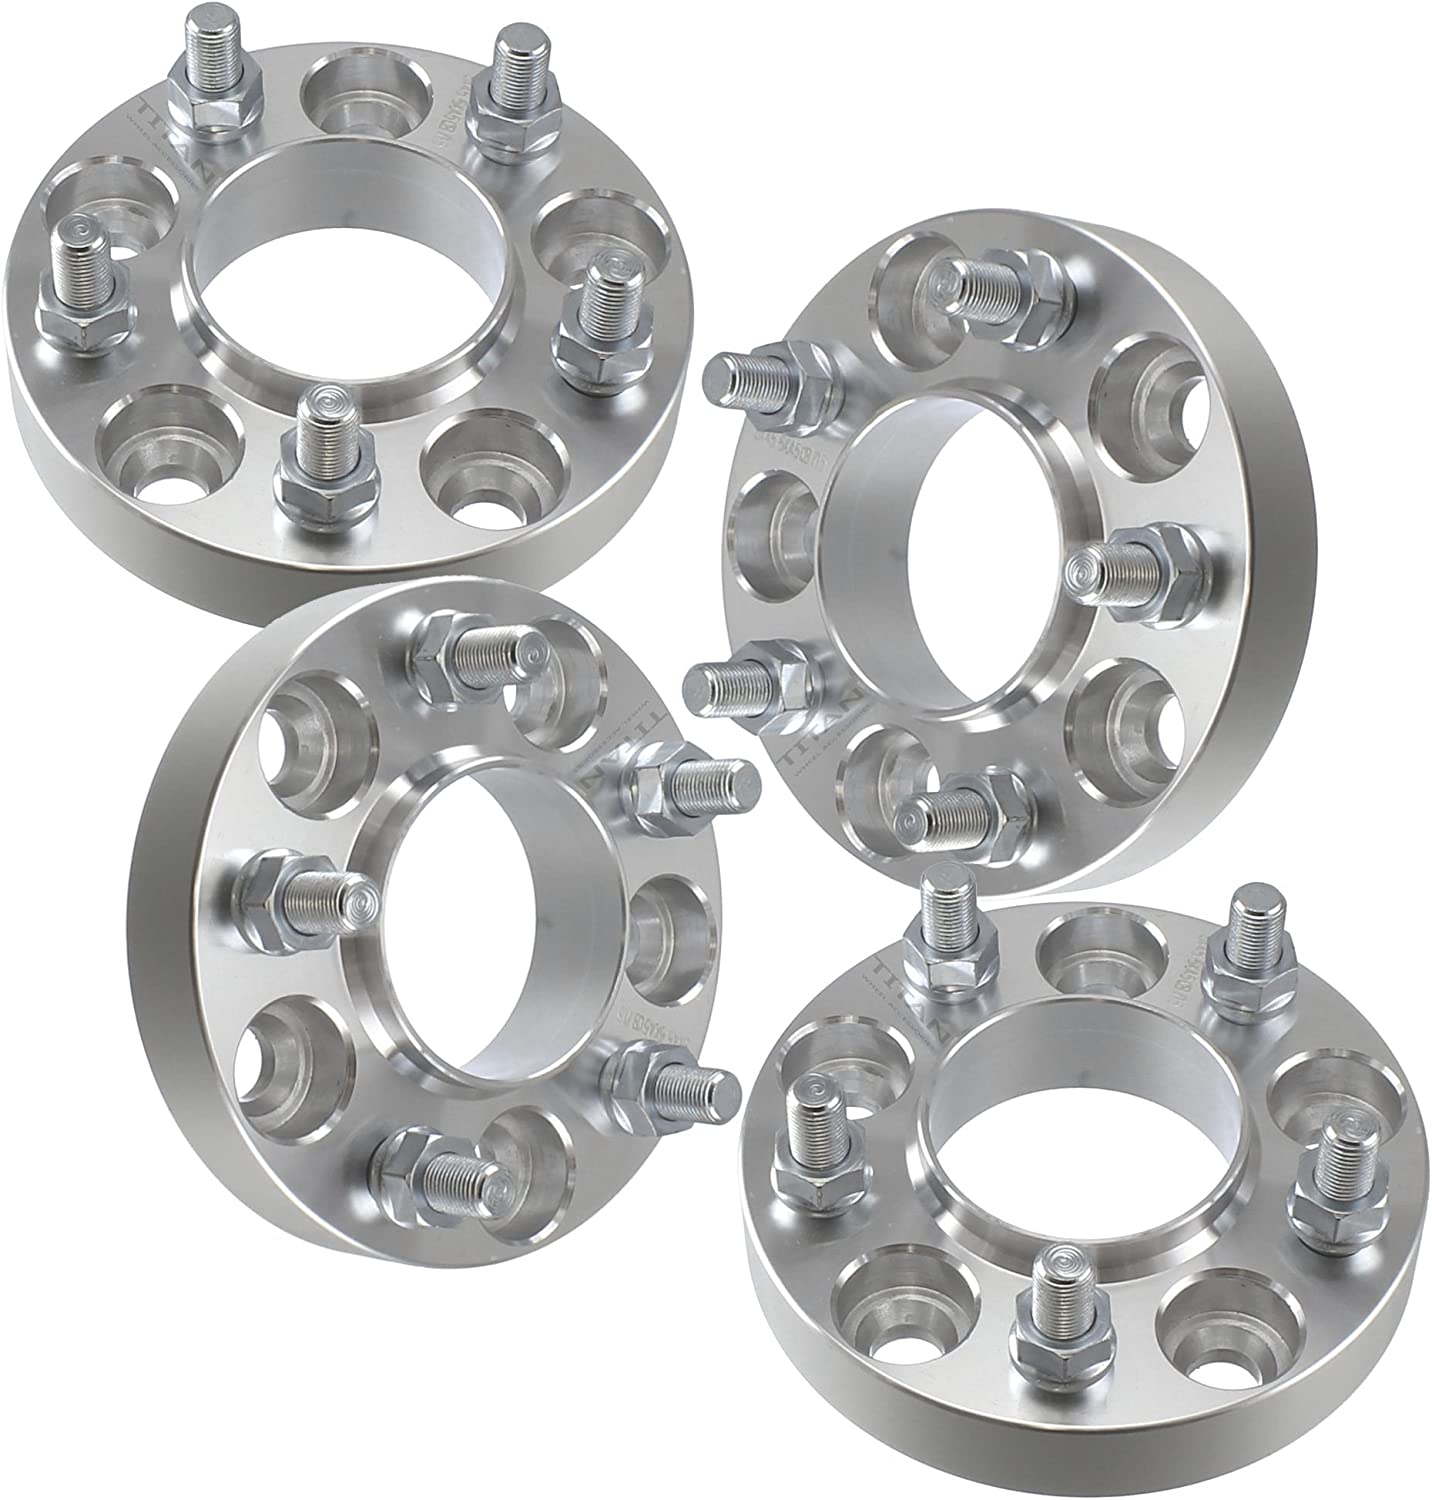 5mm Wheel Adapters 5x100 Hubcentric fits Subaru Scion 5 Lug Models 4